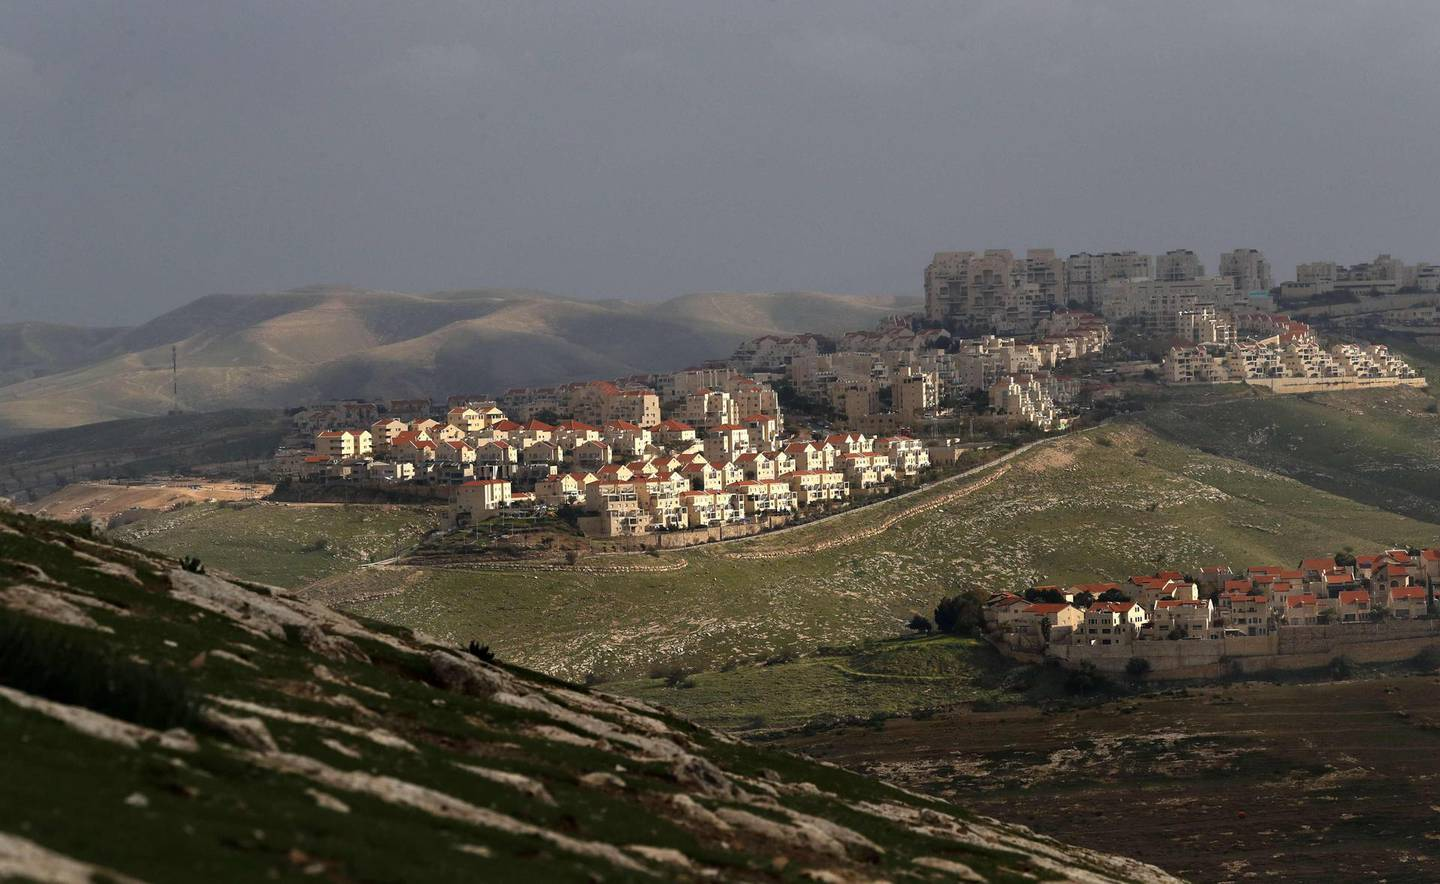 """A picture taken from the E1 corridor, a super-sensitive area of the occupied West Bank, shows Israeli settlement of Maale Adumin in the background on February 25, 2020. Netanyahu pledged to build 3,500 new settler homes in a super-sensitive area of the occupied West Bank, just a week before a tight general election. """"I gave immediate instructions for a permit to deposit (plans) for the construction of 3,500 units in E1,"""" Netanyahu said. / AFP / AHMAD GHARABLI"""